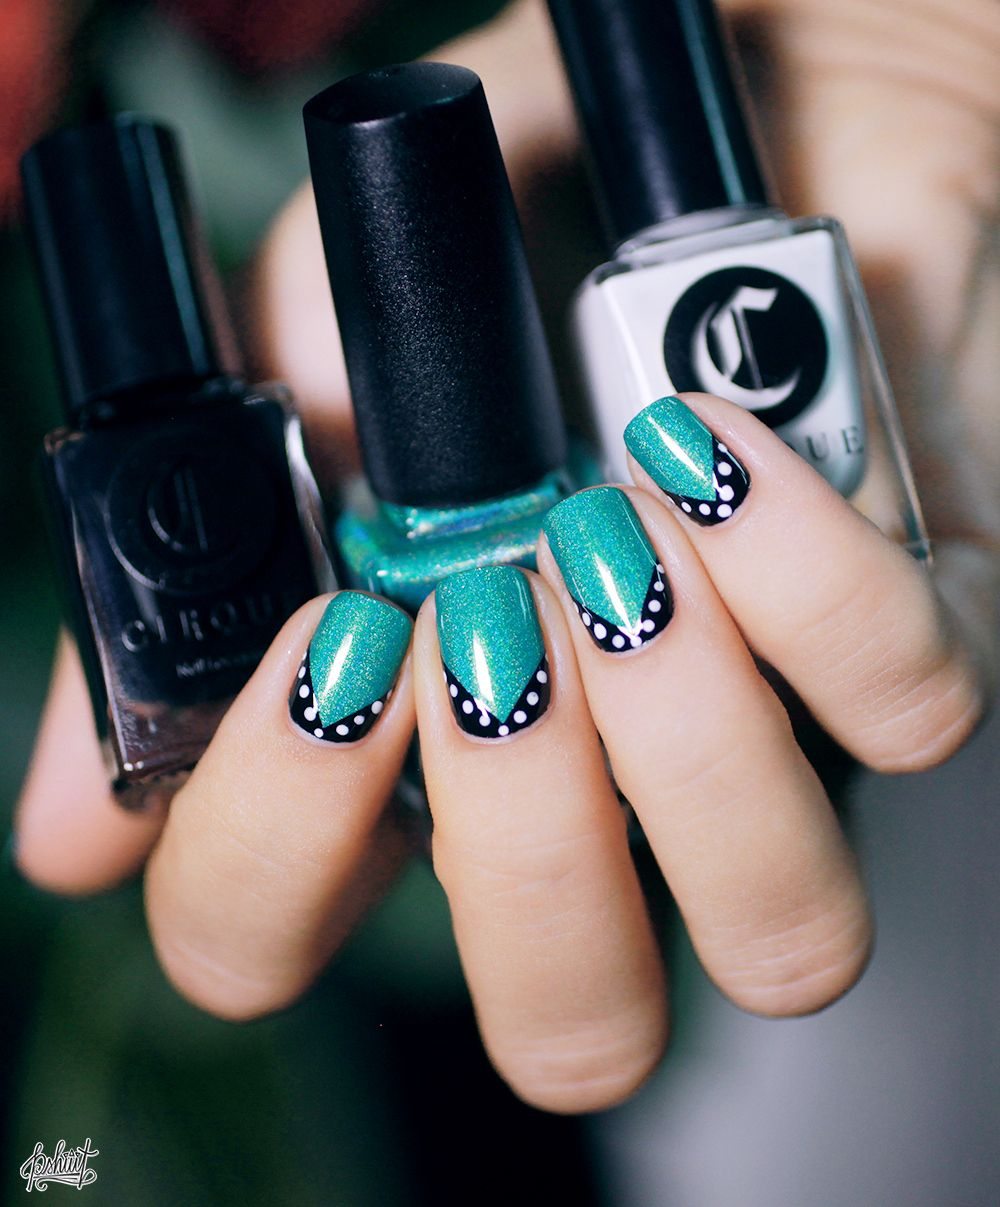 Nail Art Ideas » Nail Art Lines And Dots - Pictures of Nail Art ...